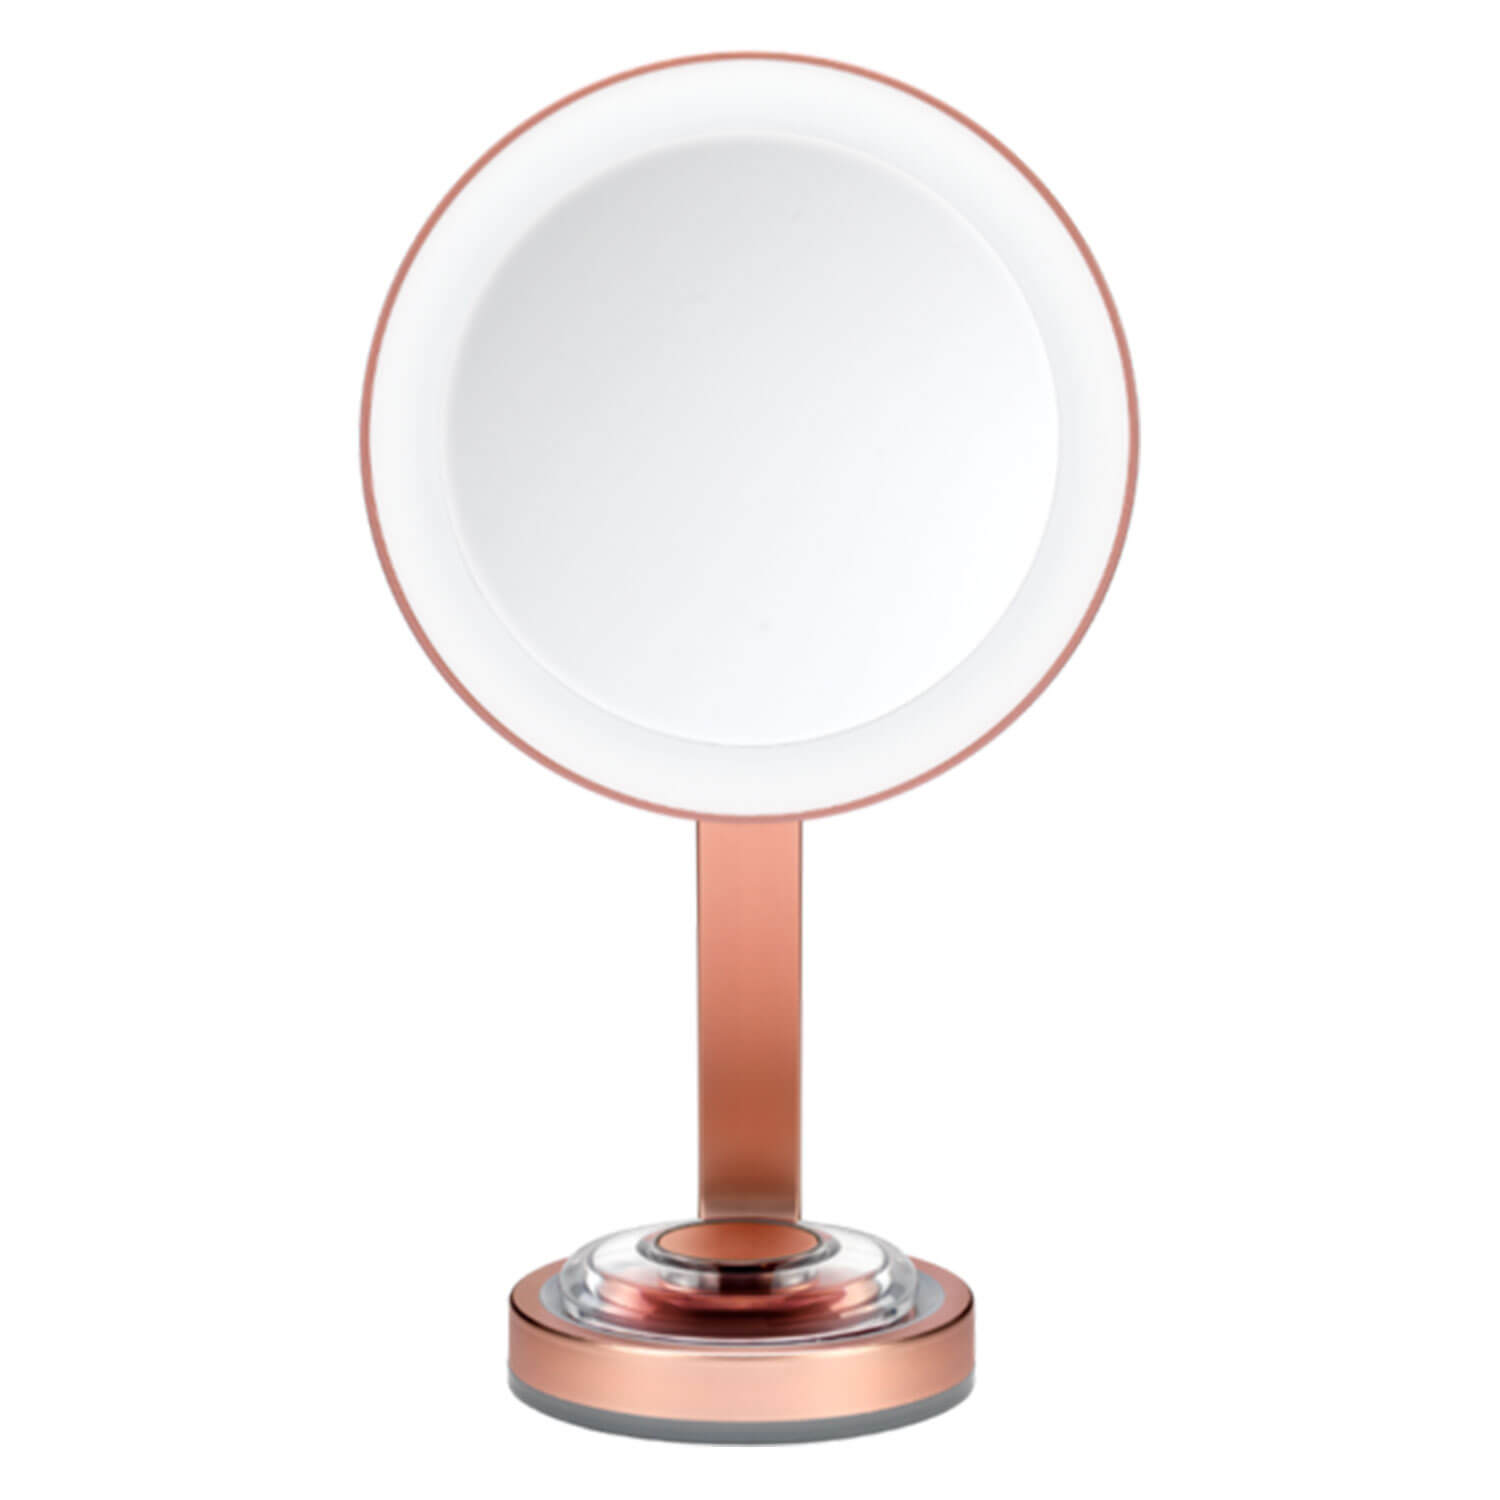 BaByliss Paris - LED Beauty Mirror 9450E